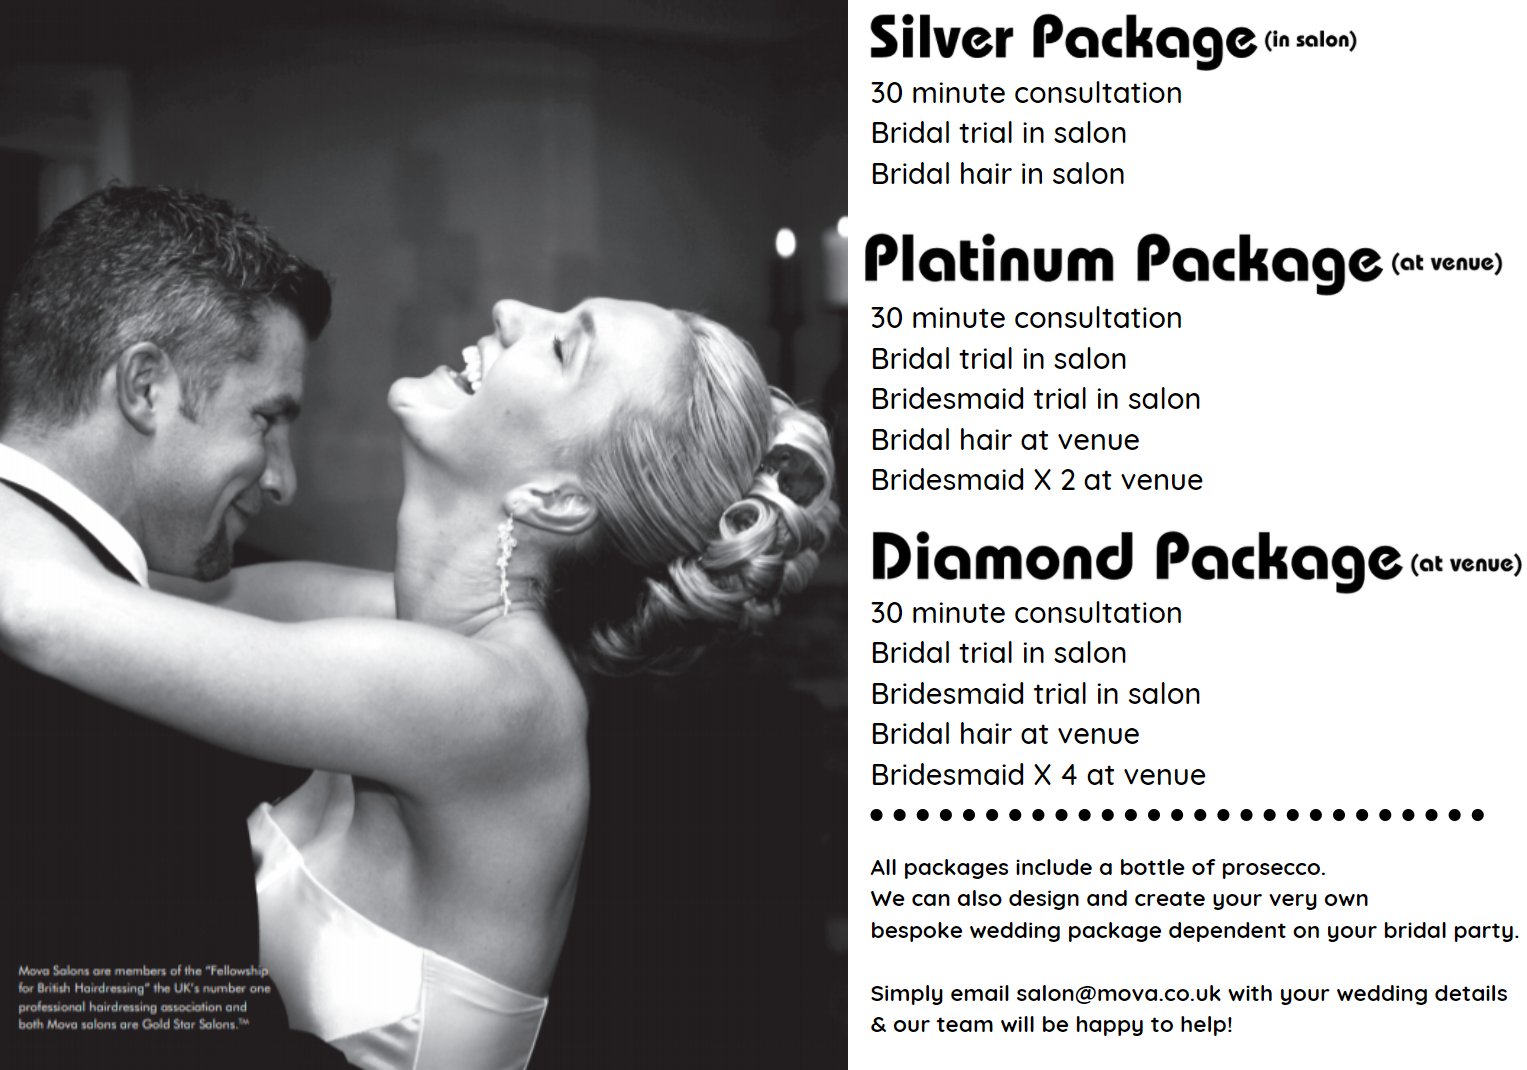 MOVA WEDDING PACKAGES